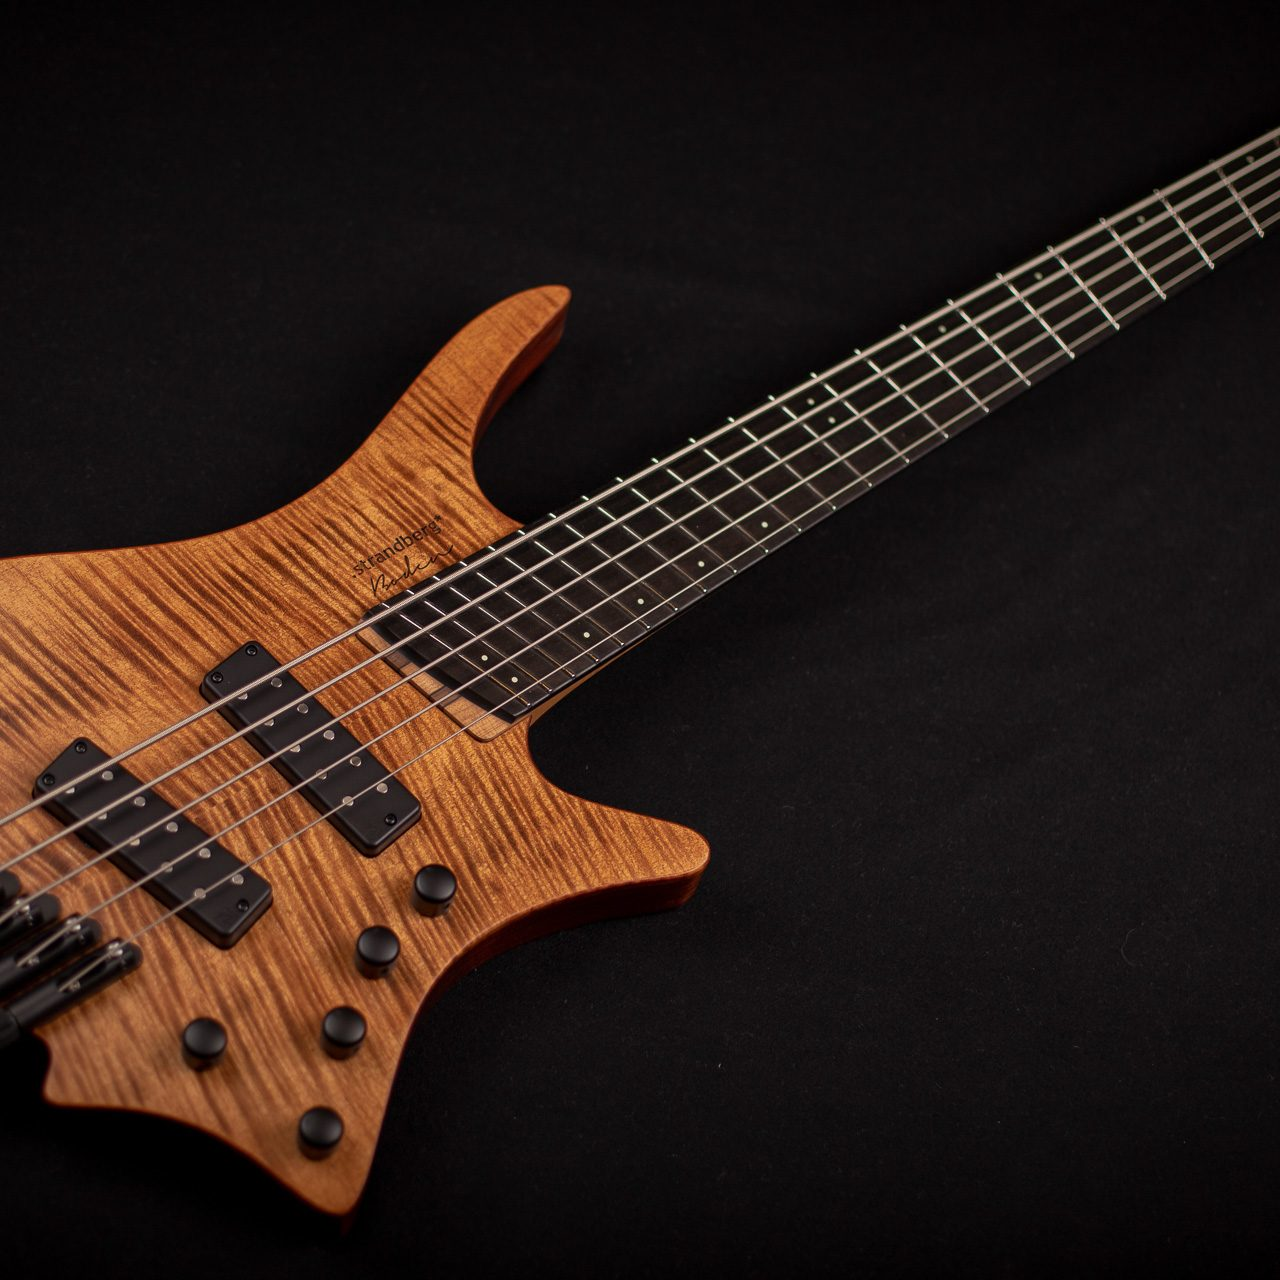 Headless boden BASS 5 string brown front view